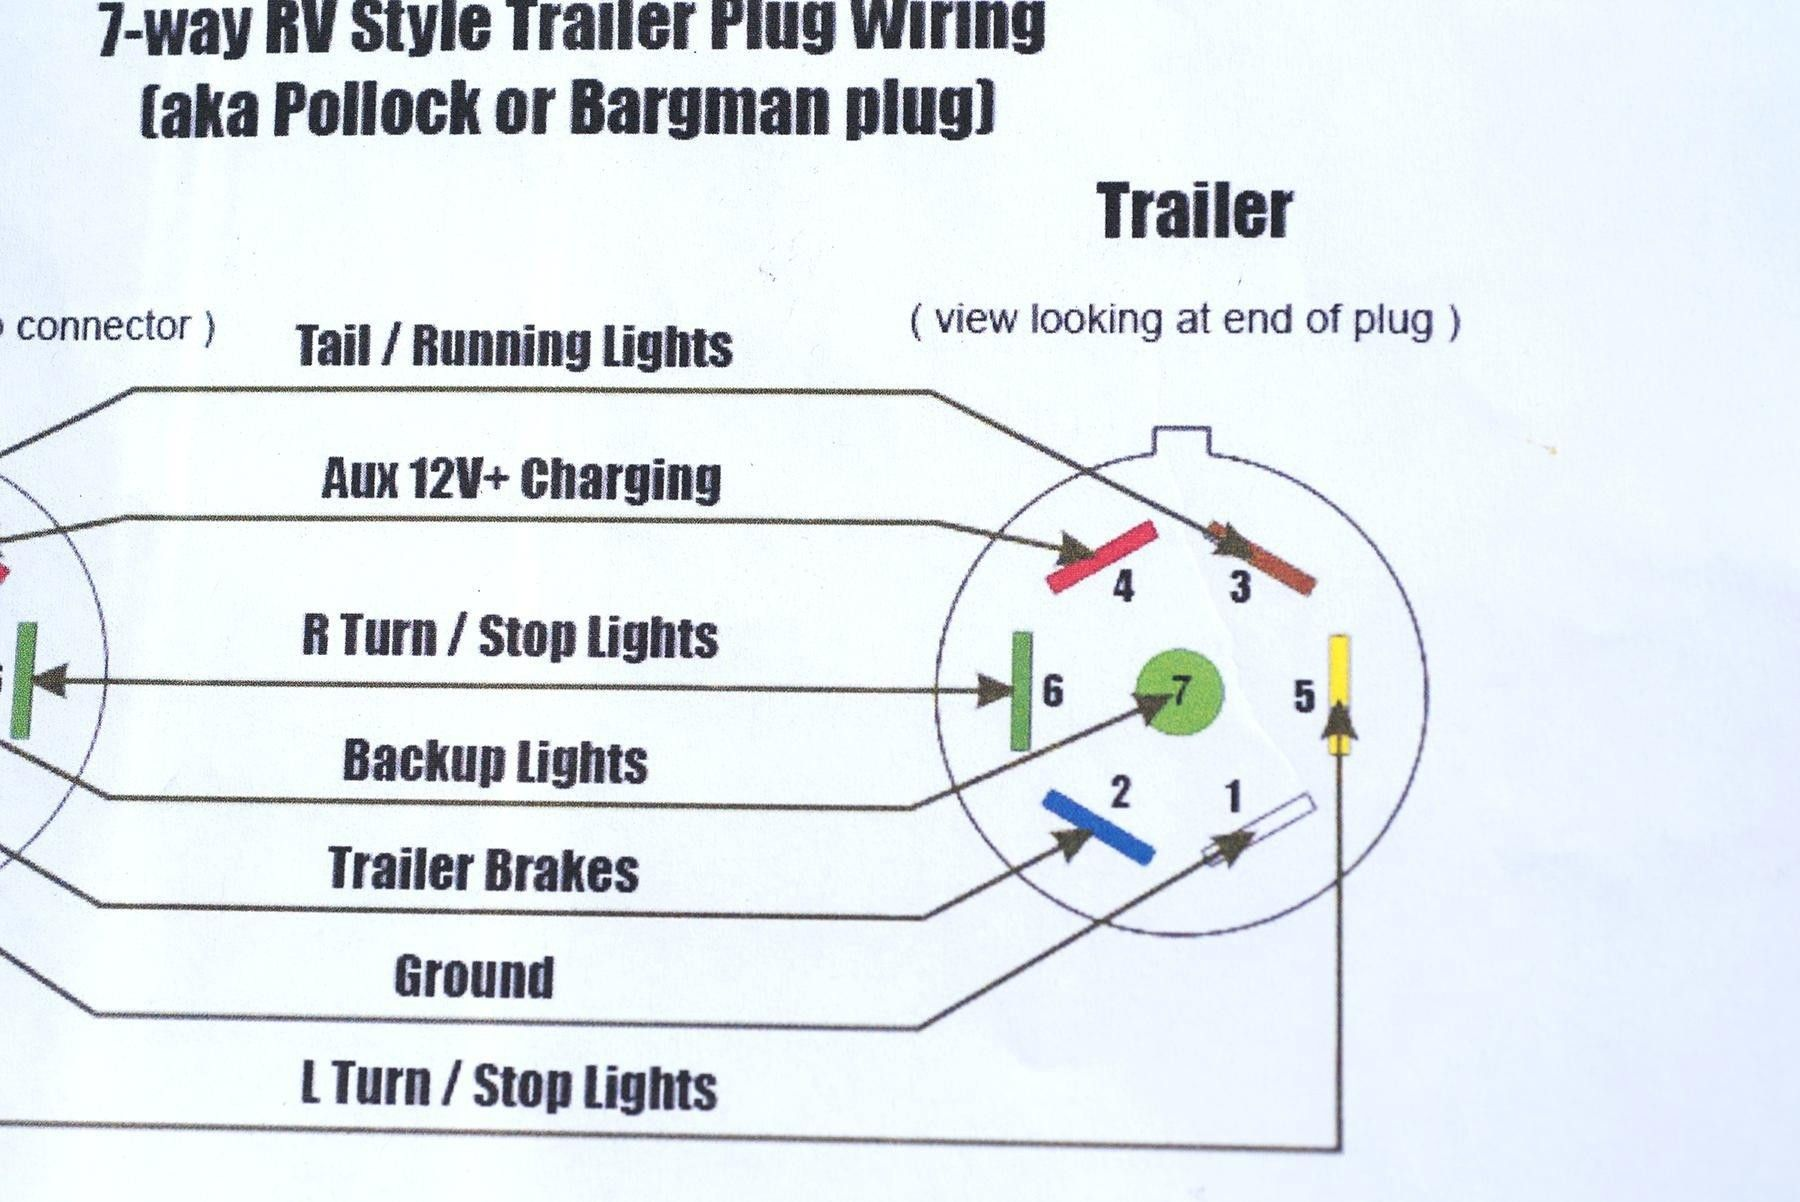 New 1998 Dodge Ram 1500 Trailer Wiring Diagram #diagram #diagramsample  #diagramtemplate #wiring… | Trailer wiring diagram, Trailer light wiring,  Boat trailer lightsPinterest